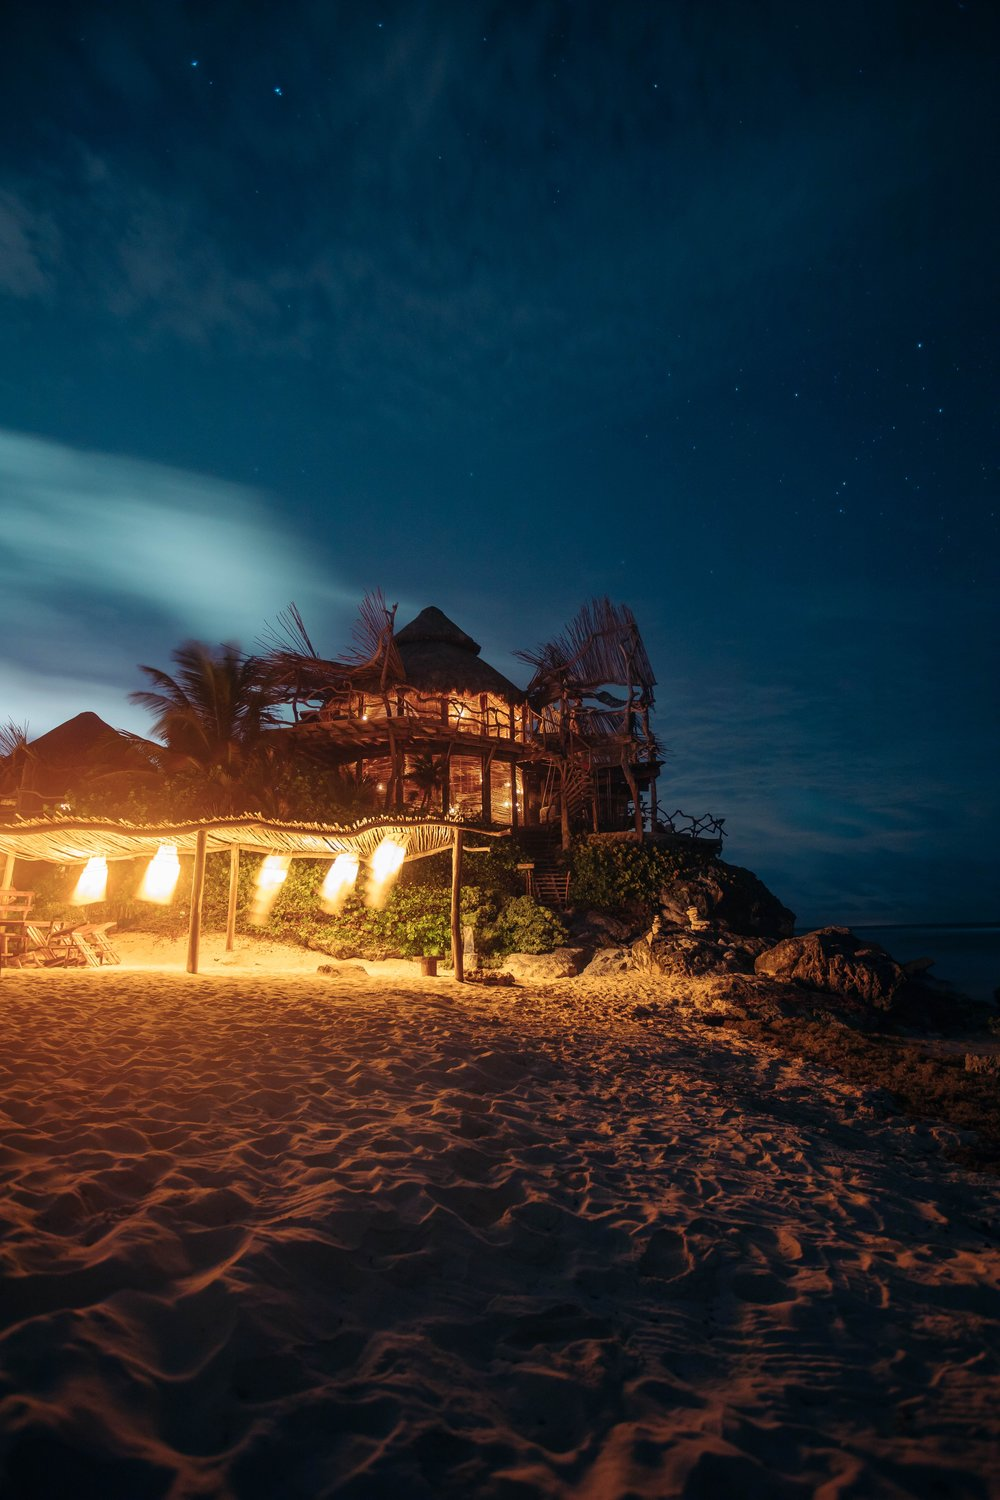 tiki style hut hotel in the sand on a beach at night